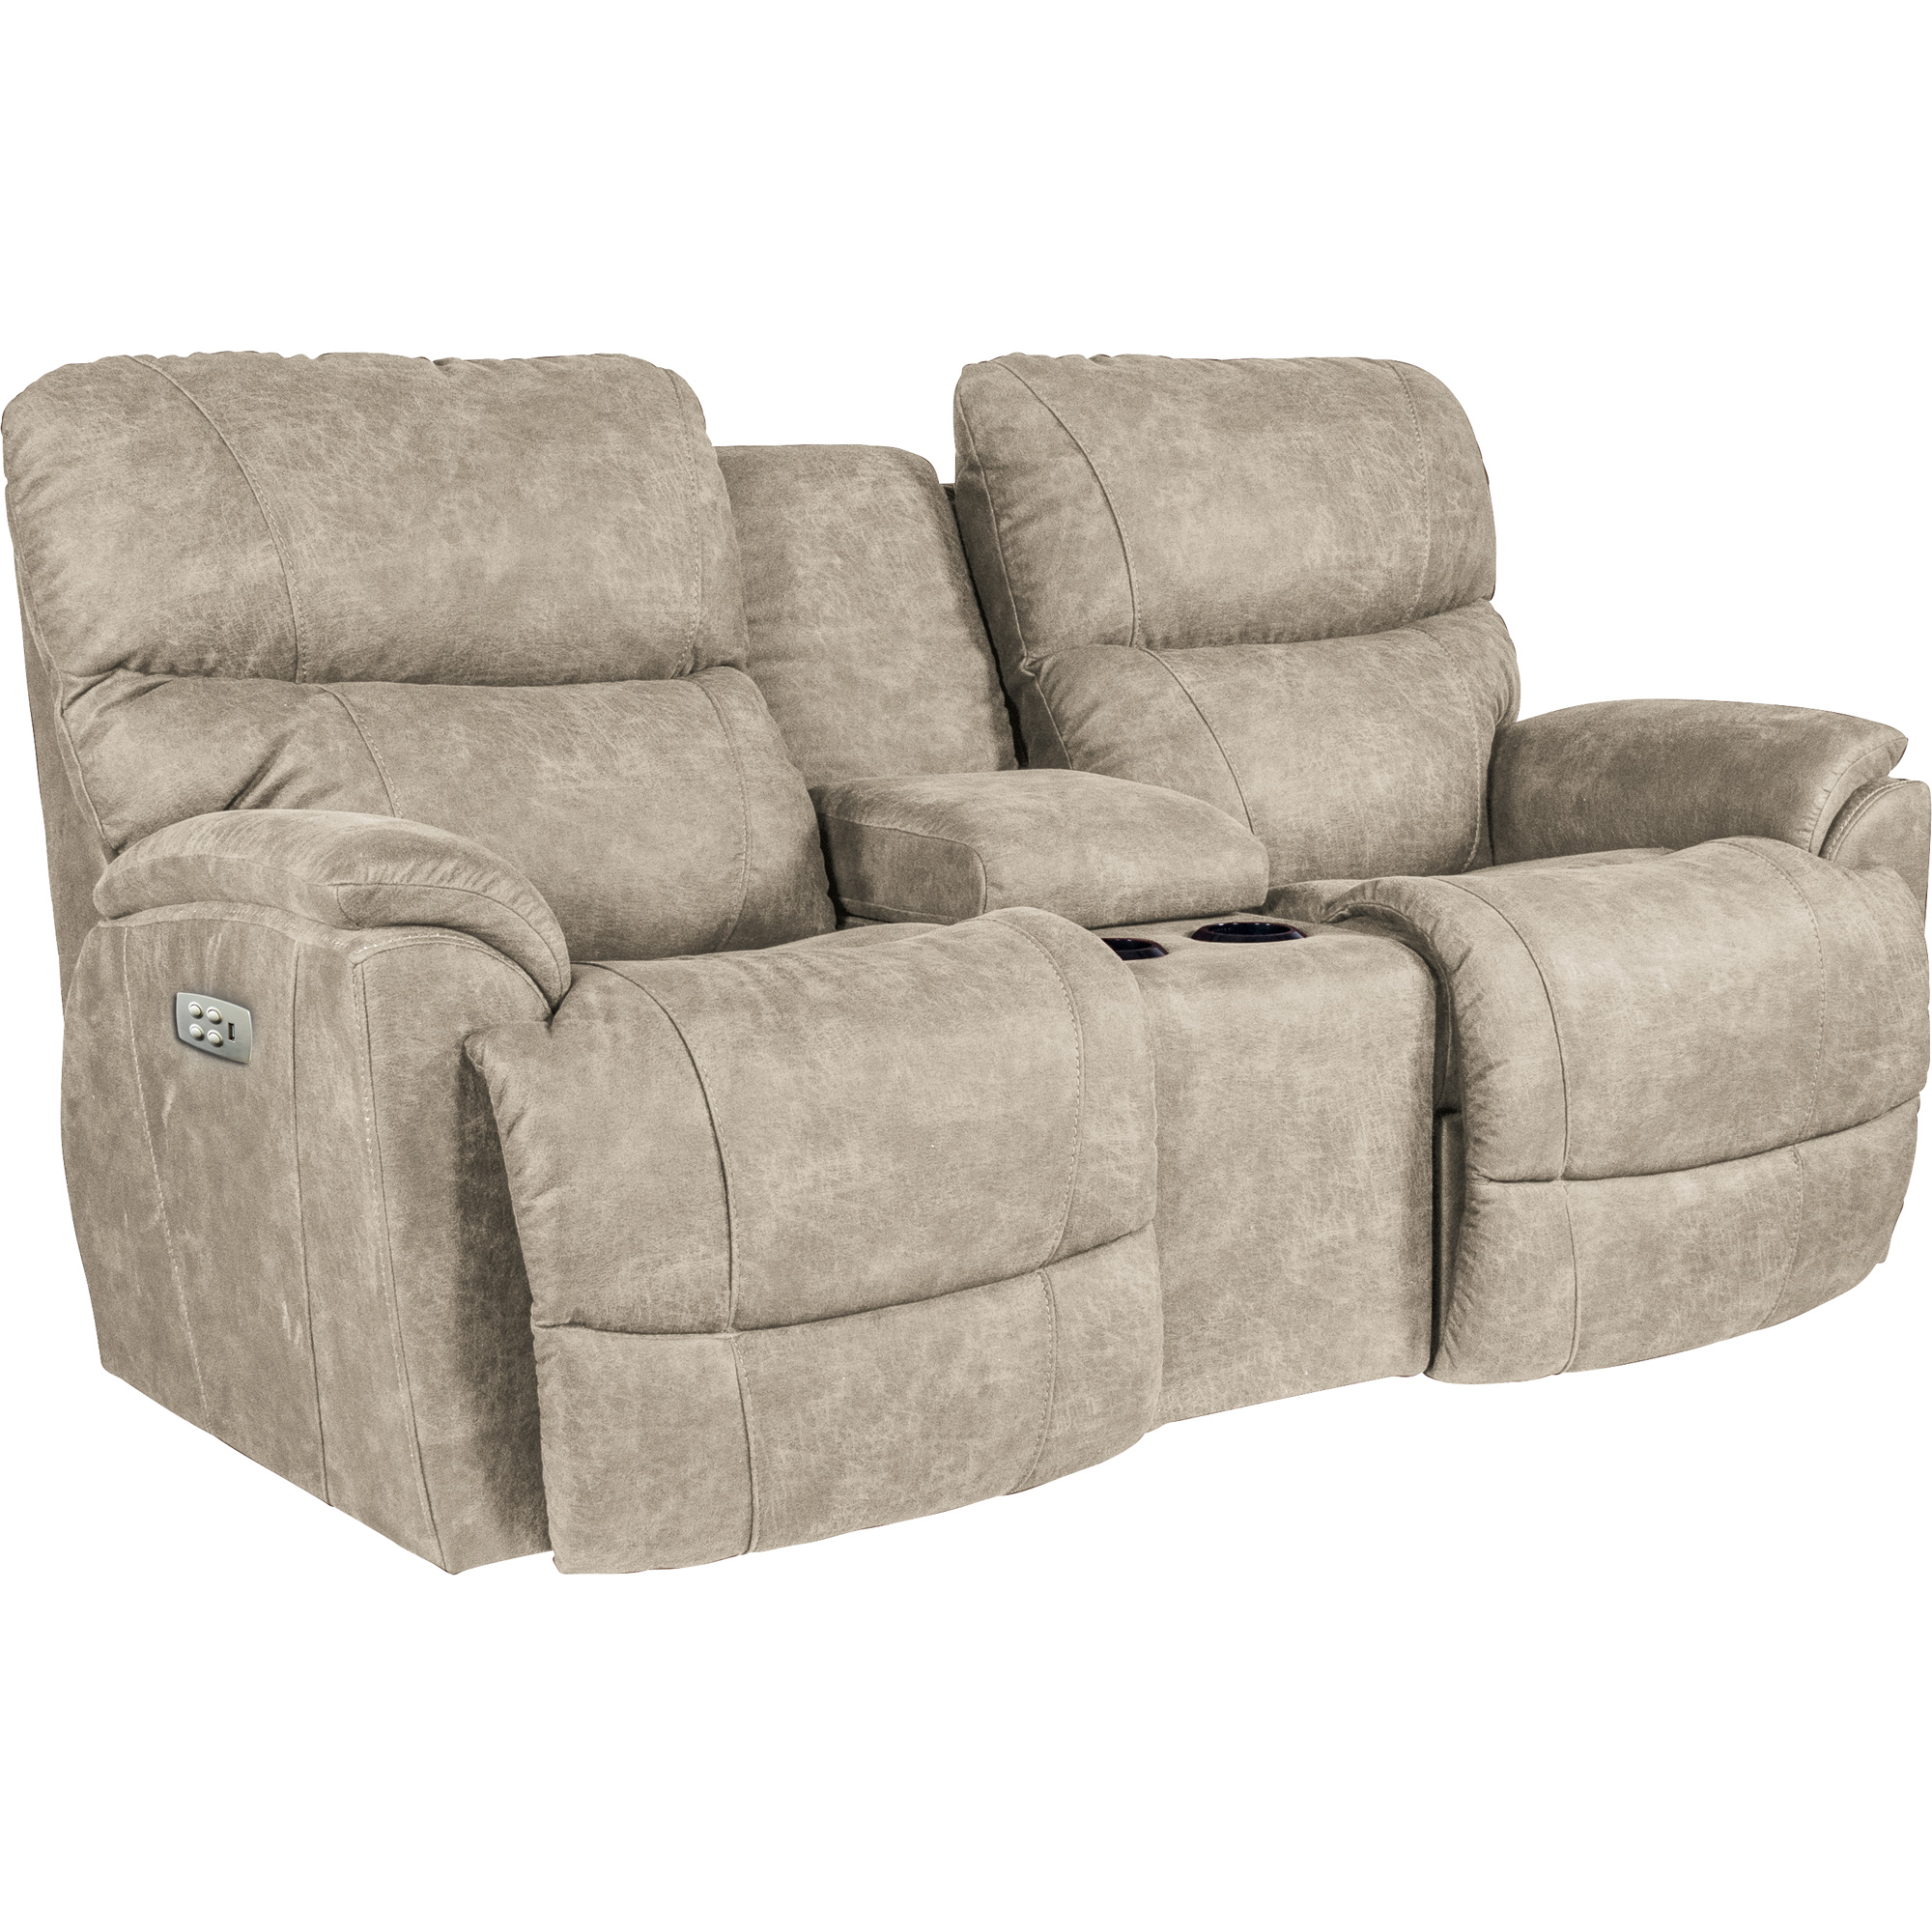 La-Z-Boy | Trouper Stucco Power Plus Reclining Console Loveseat Sofa